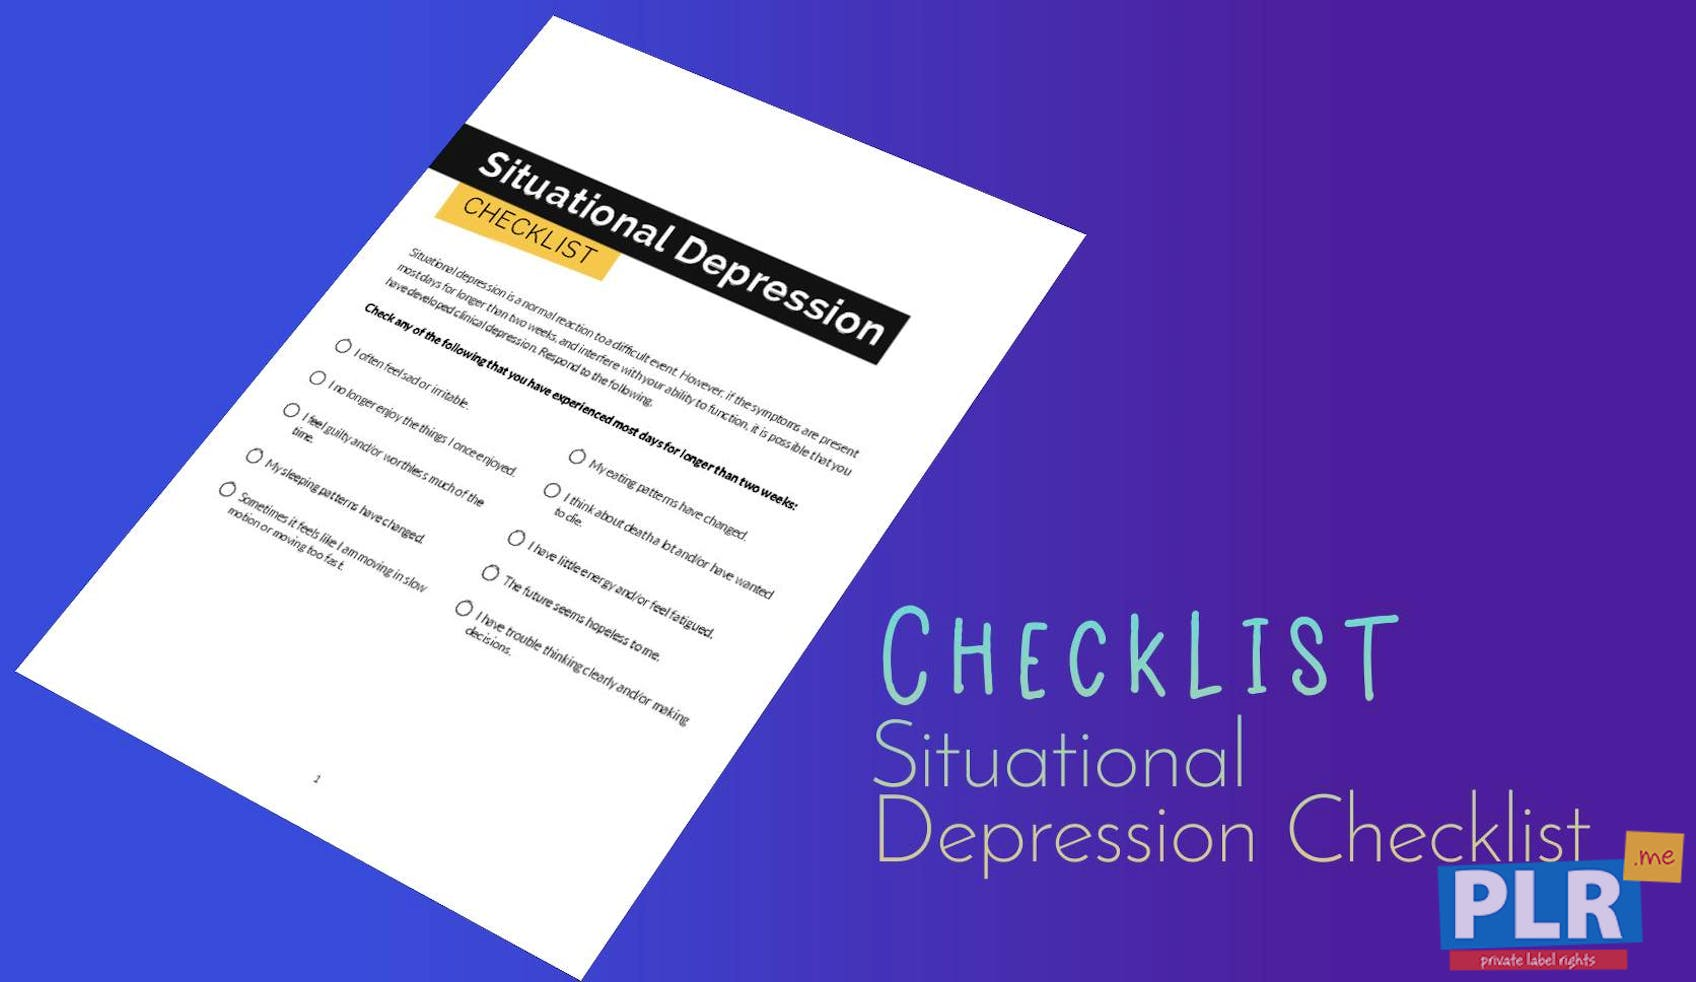 Situational Depression Checklist